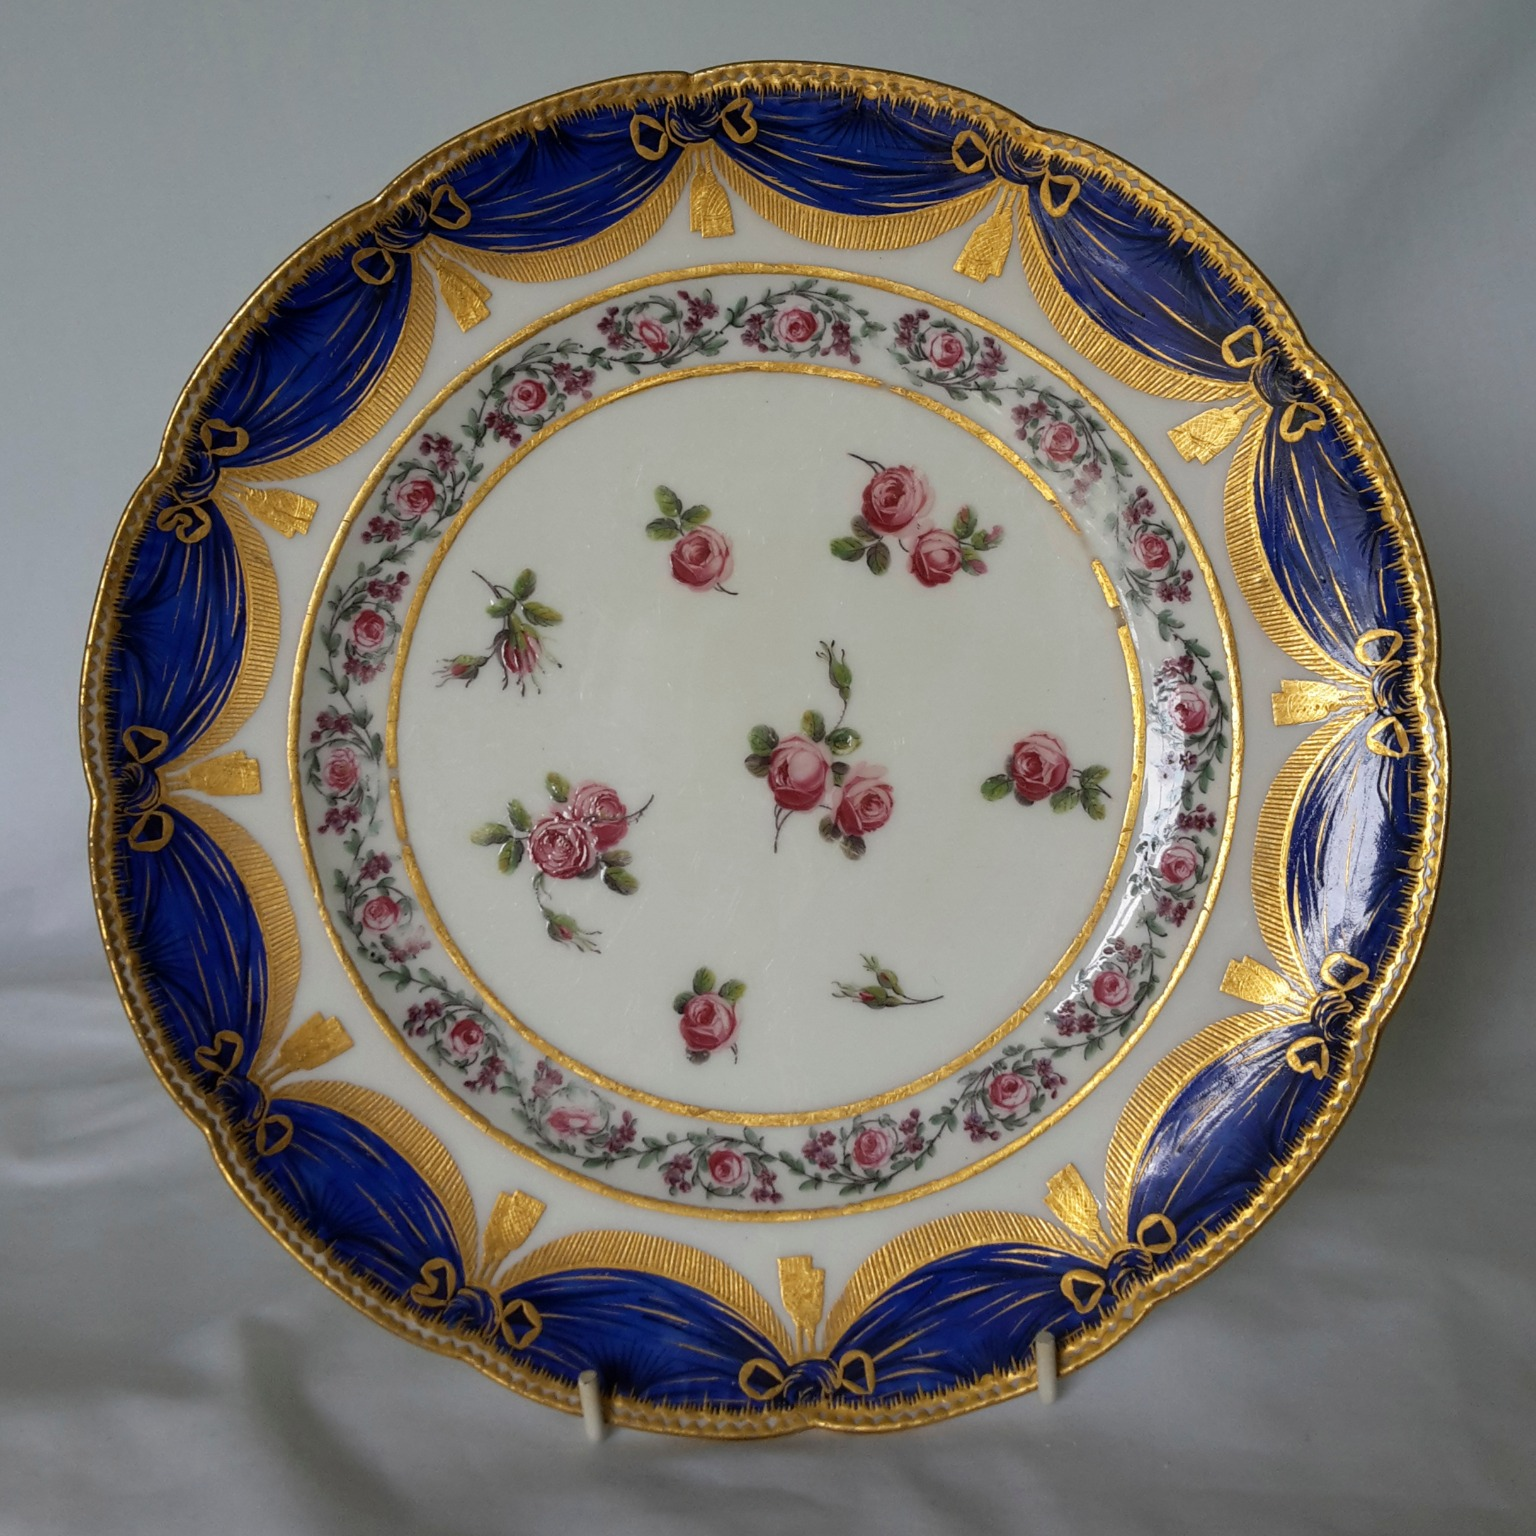 A collection of Chelsea-Derby porcelain, 1770-1785, Royal Crown Derby Museum, Art Funded 2016